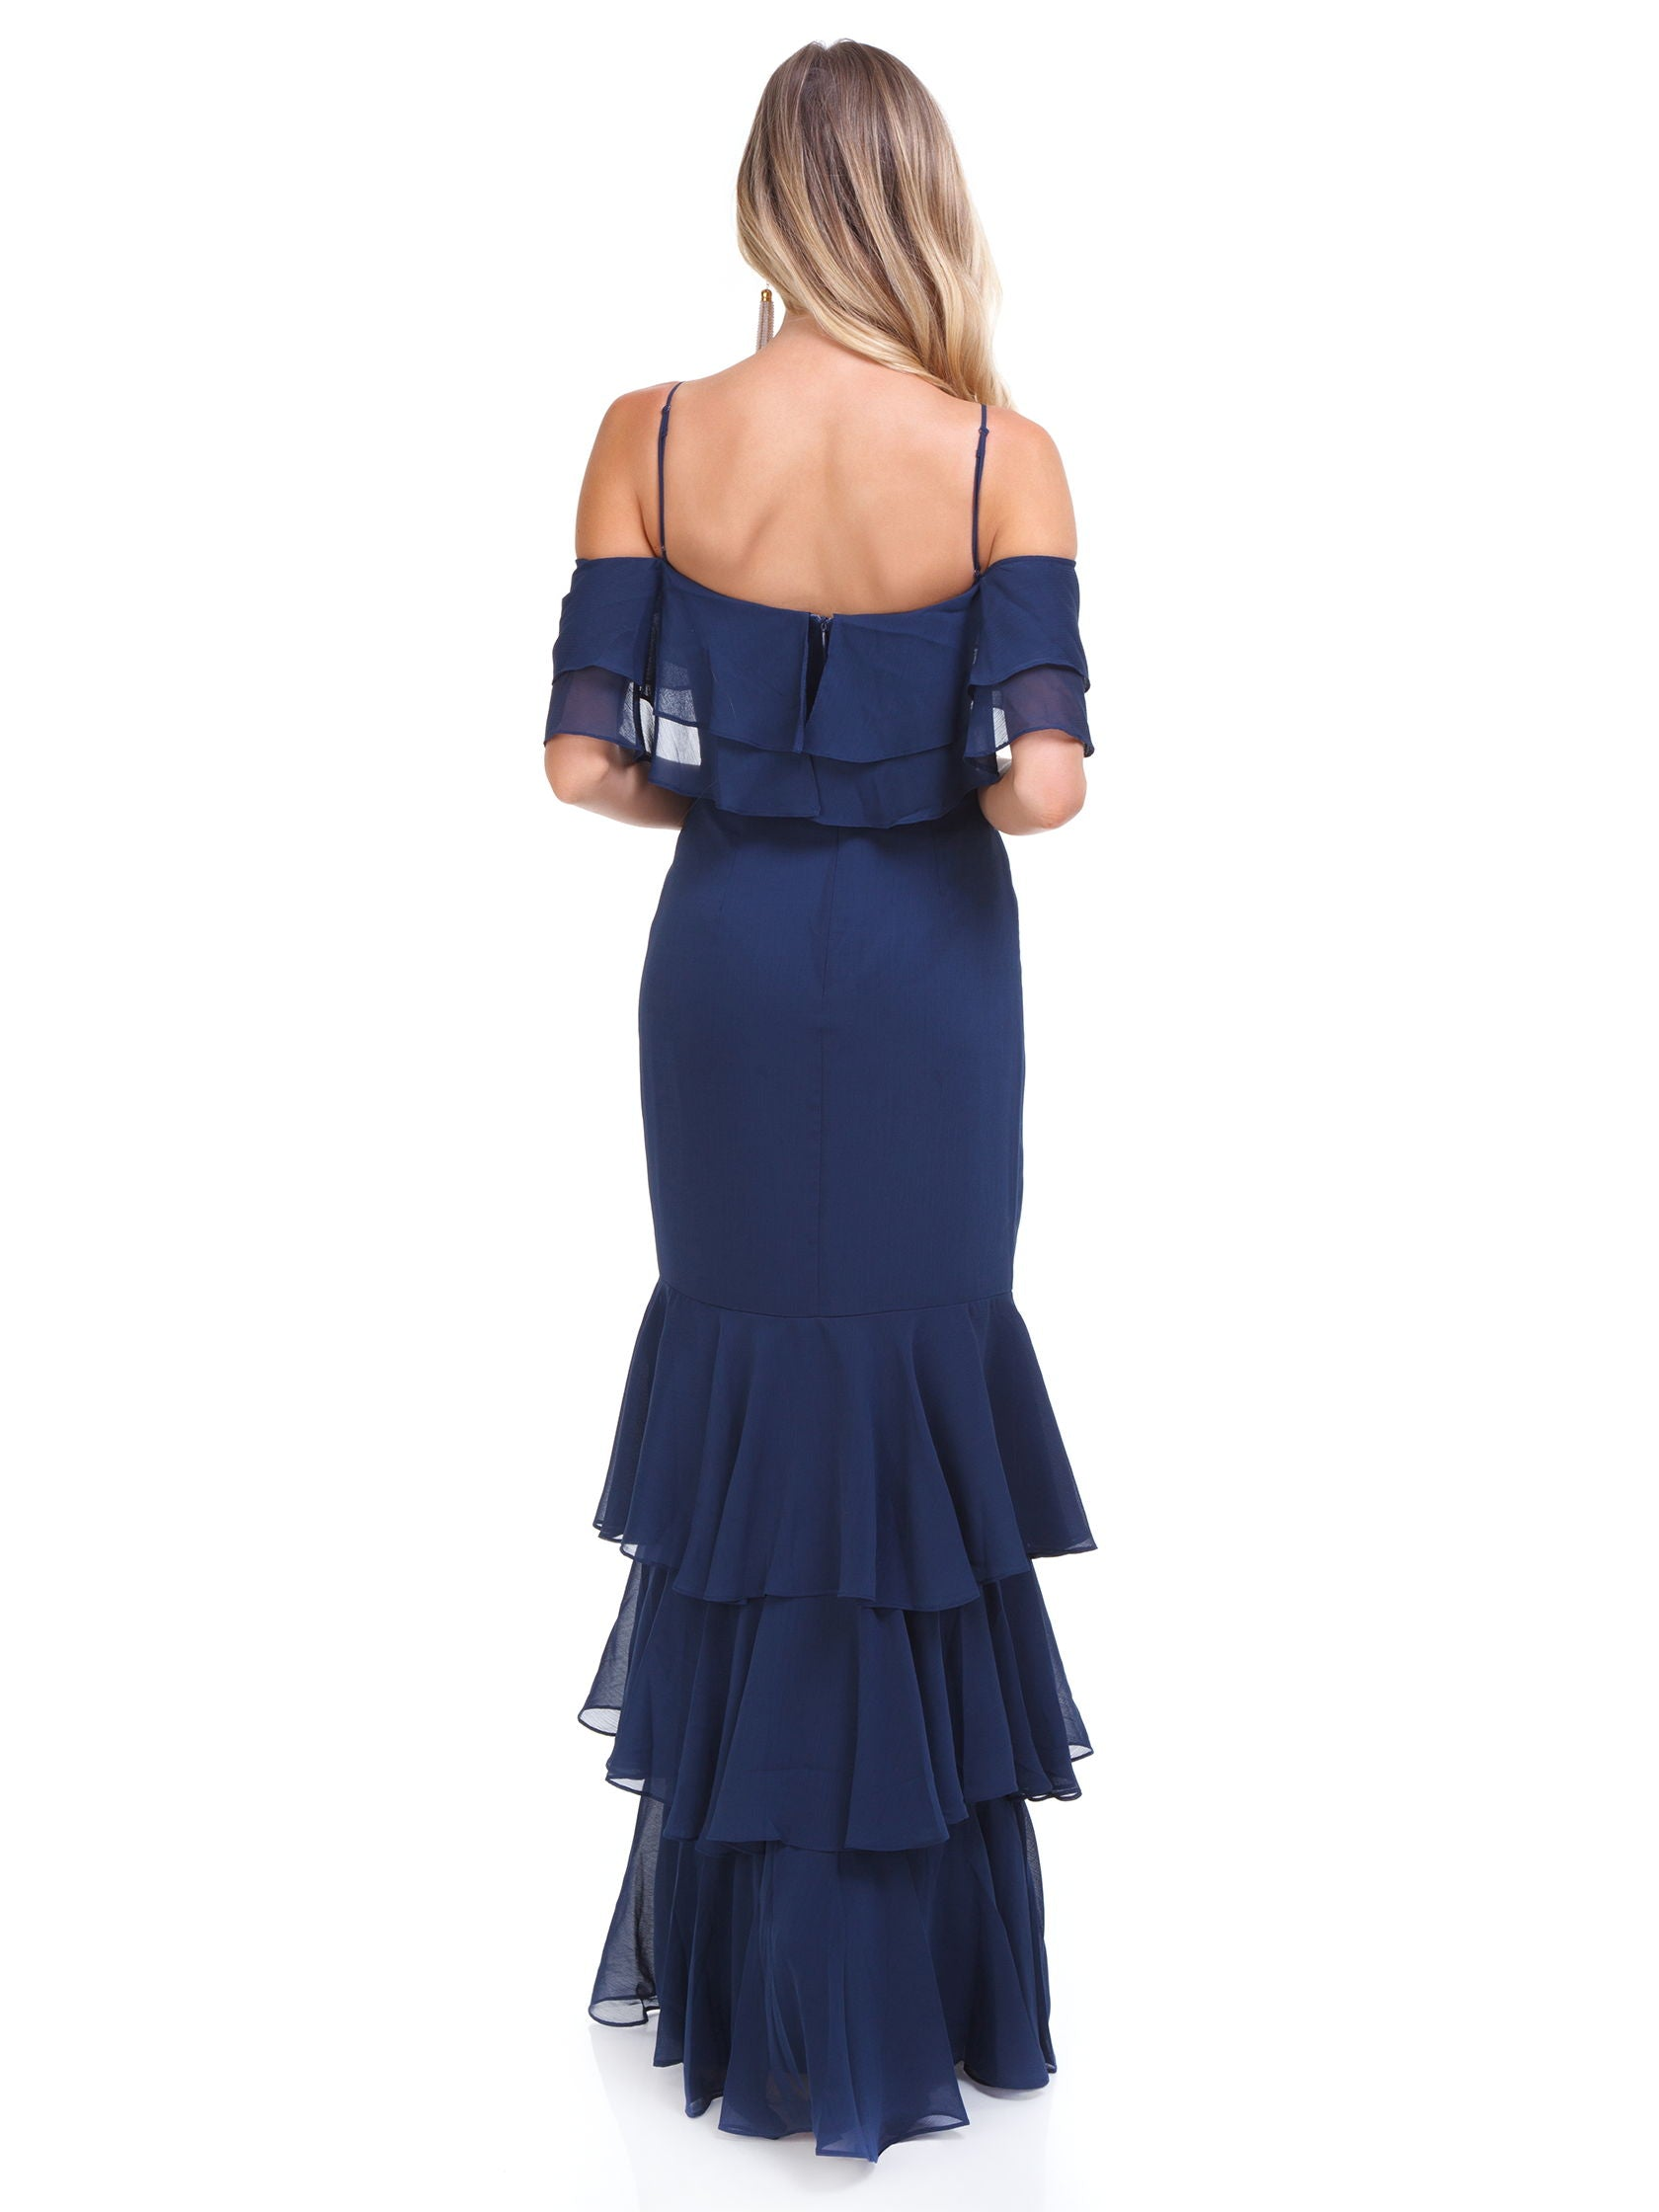 Women outfit in a dress rental from WAYF called Lauren Off Shoulder Ruffle Maxi Dress